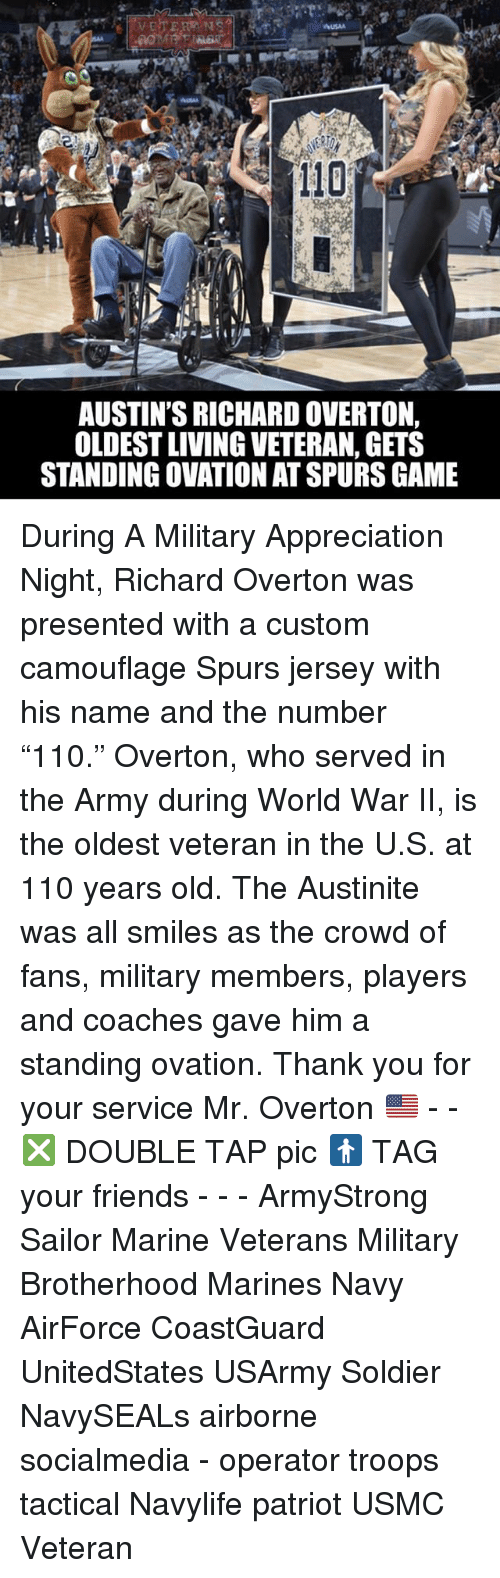 """Served in the Army: AUSTIN'S RICHARD OVERTON,  OLDESTLIVING VETERAN, GETS  STANDING OVATION ATSPURS GAME During A Military Appreciation Night, Richard Overton was presented with a custom camouflage Spurs jersey with his name and the number """"110."""" Overton, who served in the Army during World War II, is the oldest veteran in the U.S. at 110 years old. The Austinite was all smiles as the crowd of fans, military members, players and coaches gave him a standing ovation. Thank you for your service Mr. Overton 🇺🇸 - - ❎ DOUBLE TAP pic 🚹 TAG your friends - - - ArmyStrong Sailor Marine Veterans Military Brotherhood Marines Navy AirForce CoastGuard UnitedStates USArmy Soldier NavySEALs airborne socialmedia - operator troops tactical Navylife patriot USMC Veteran"""